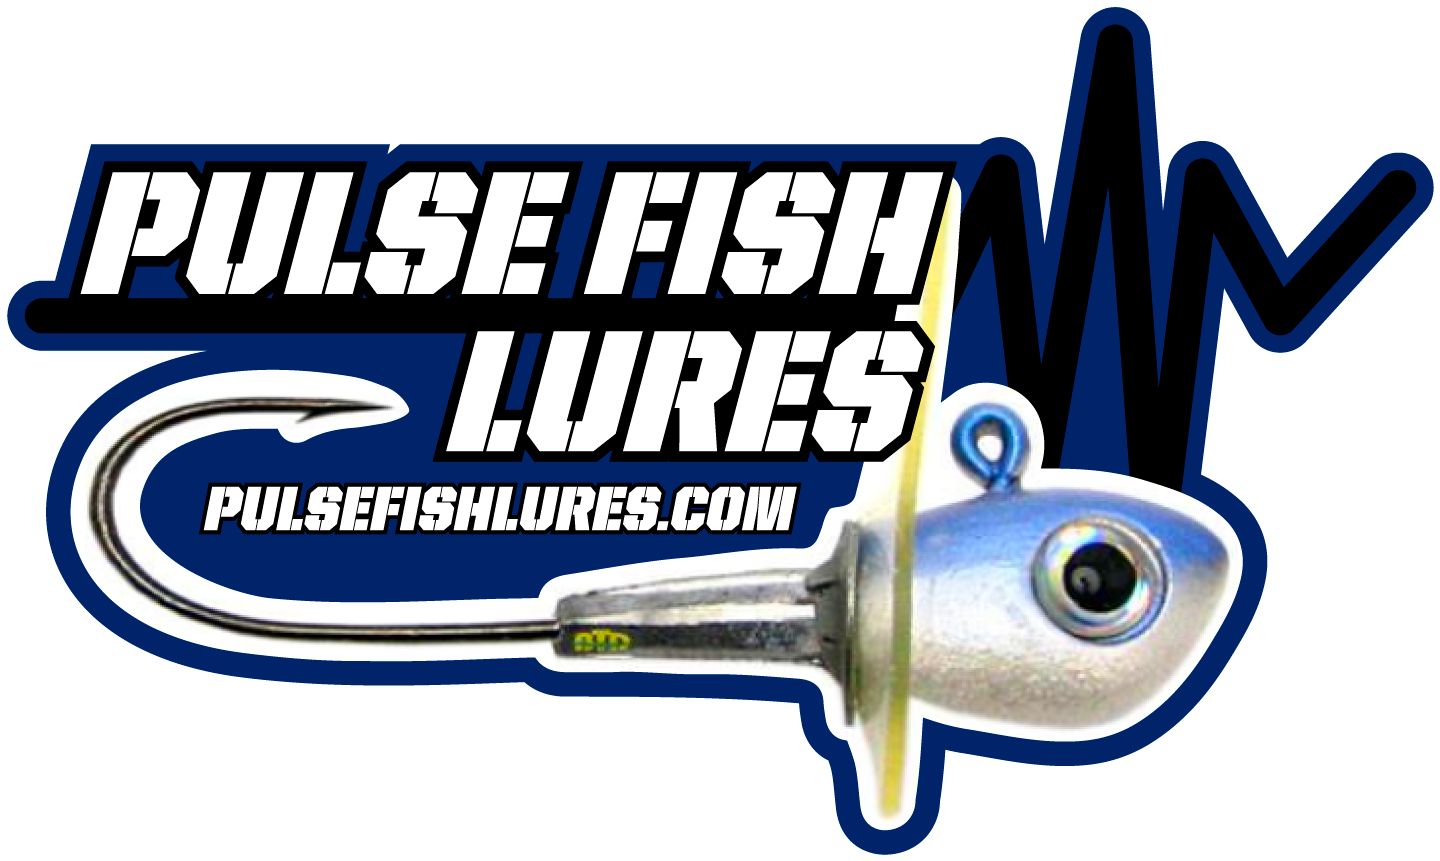 Pulse Fish Lures